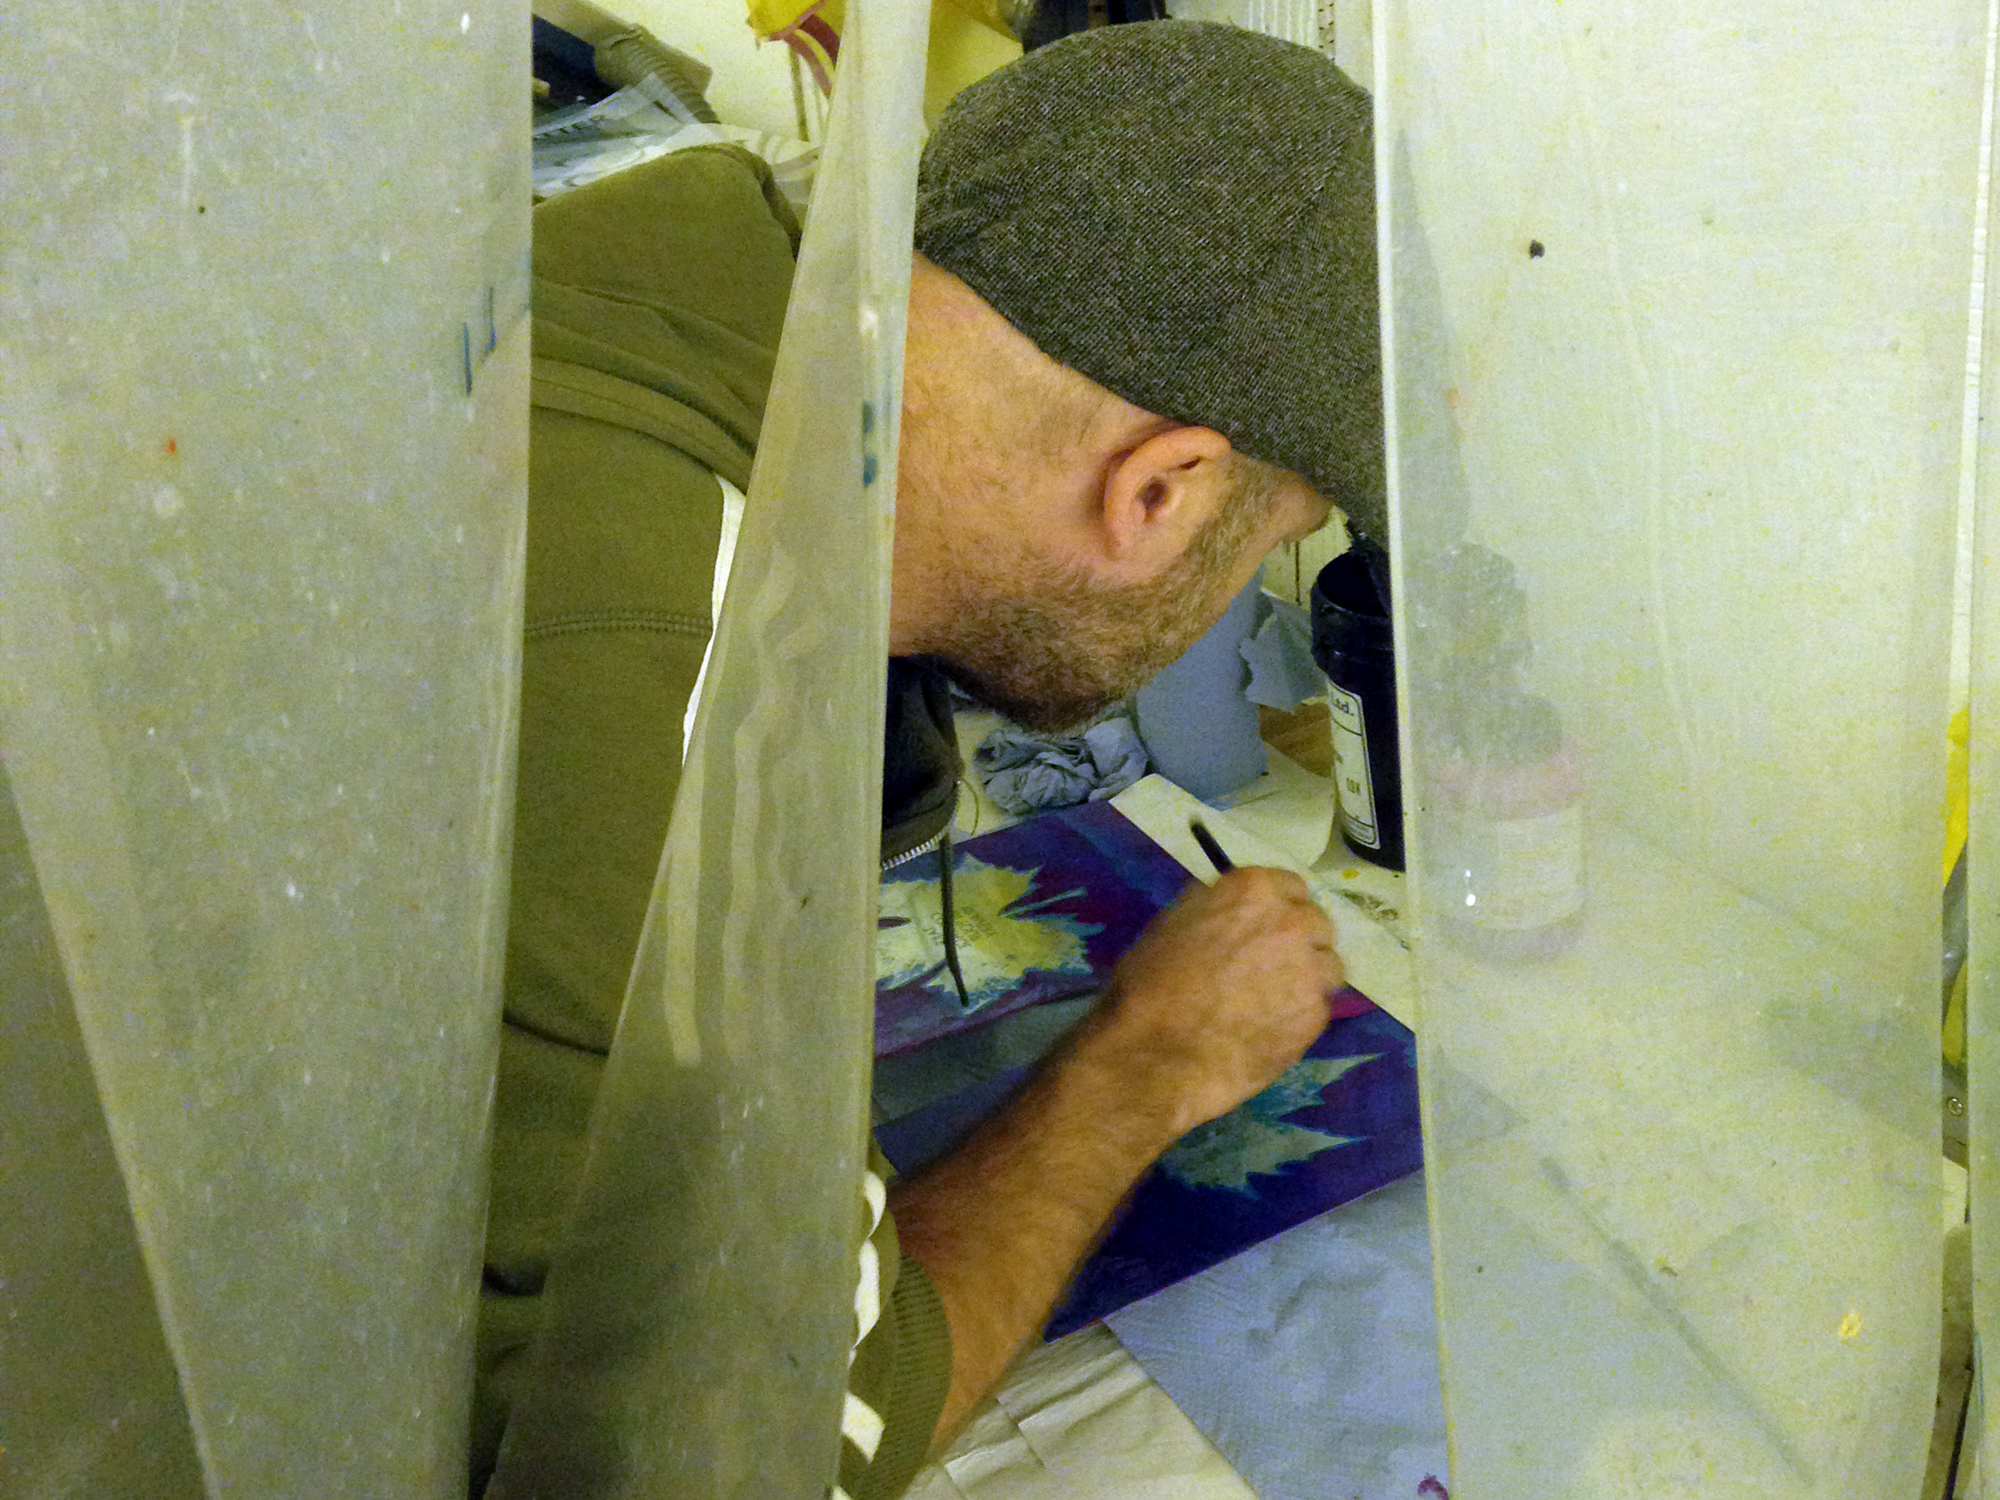 Painting the plate ('stopping out') to protect areas from etching solution